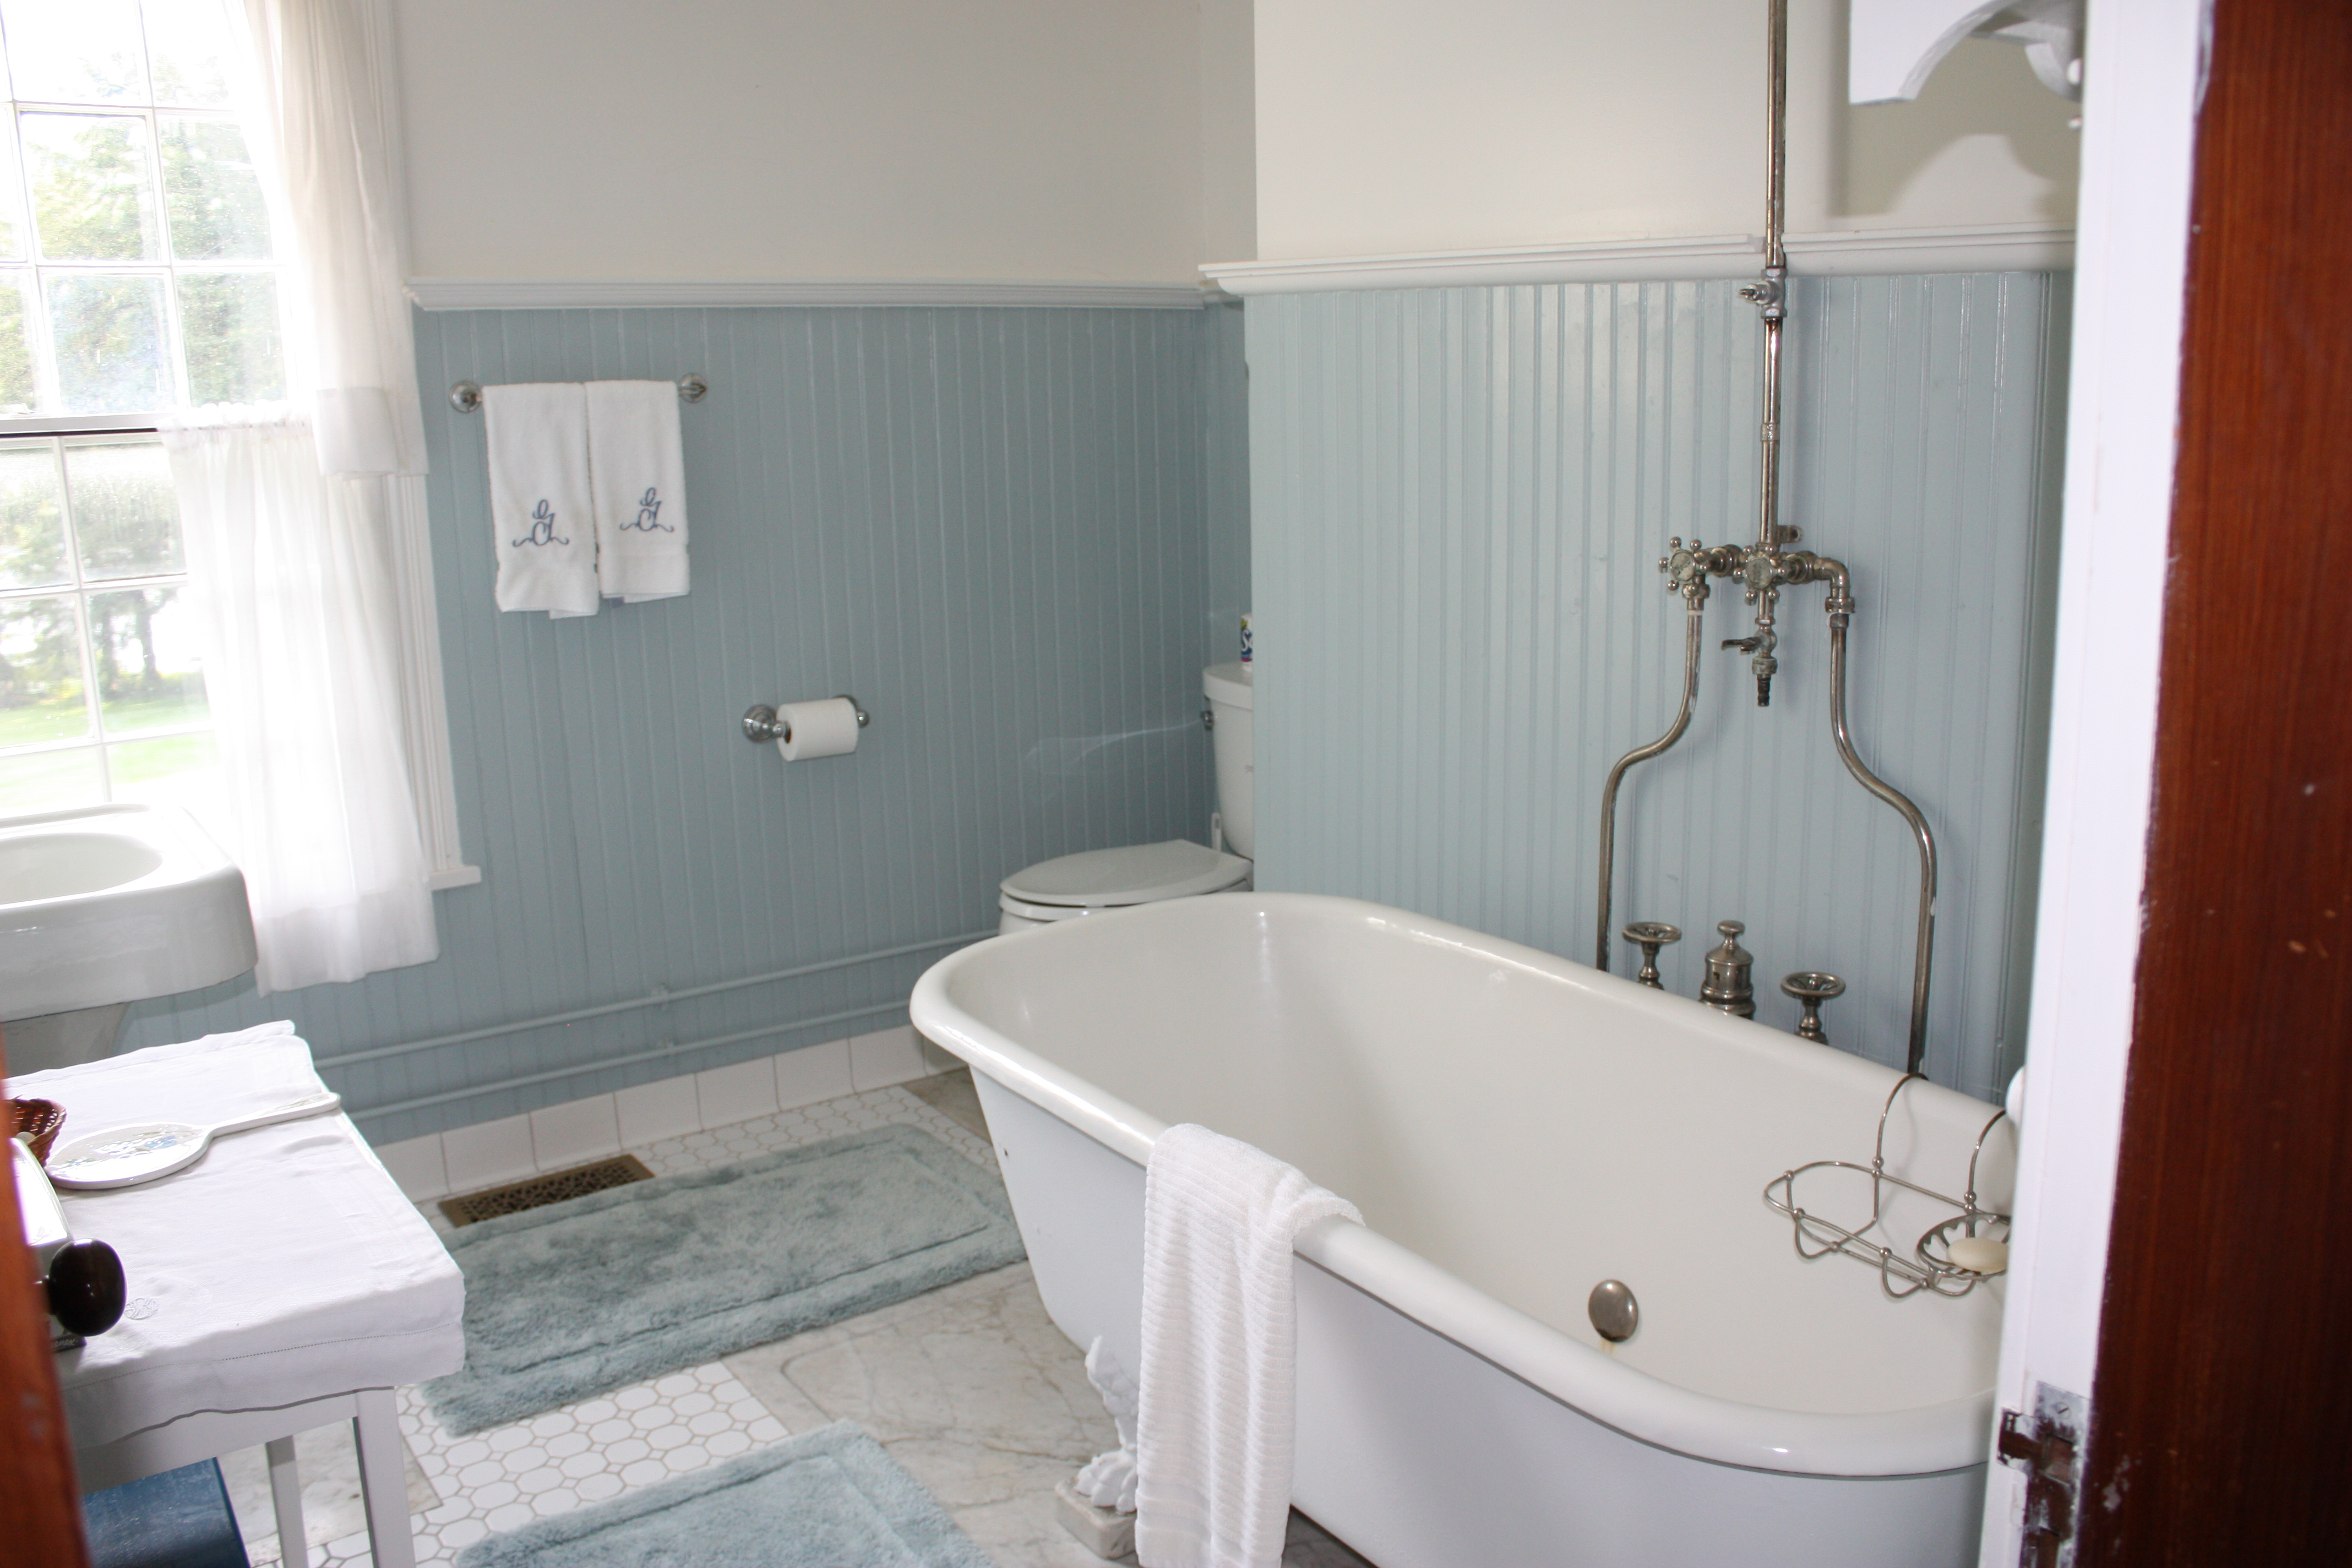 Bathroom Designs Vintage 36 nice ideas and pictures of vintage bathroom tile design ideas